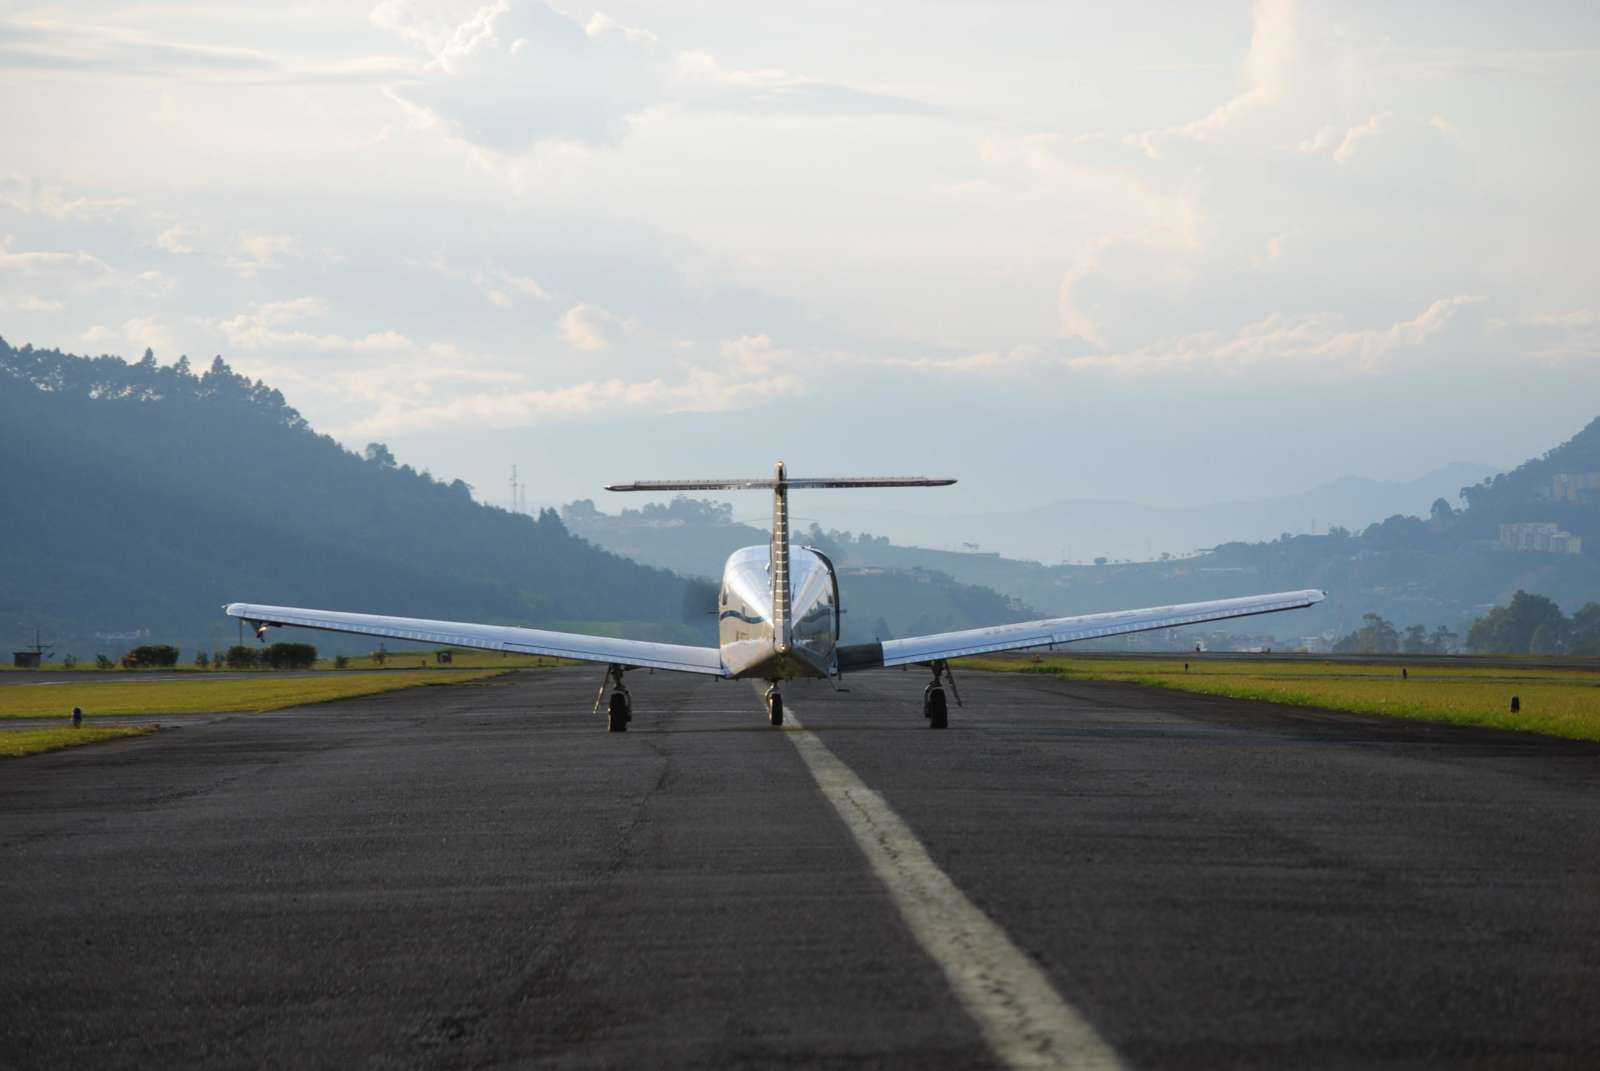 A shiny chrome airplane gets ready to launch into flight on a runway. The runway is surrounded by bright green grass and a beautiful mountainscape is in the background, in the direction the plane is taking off into.